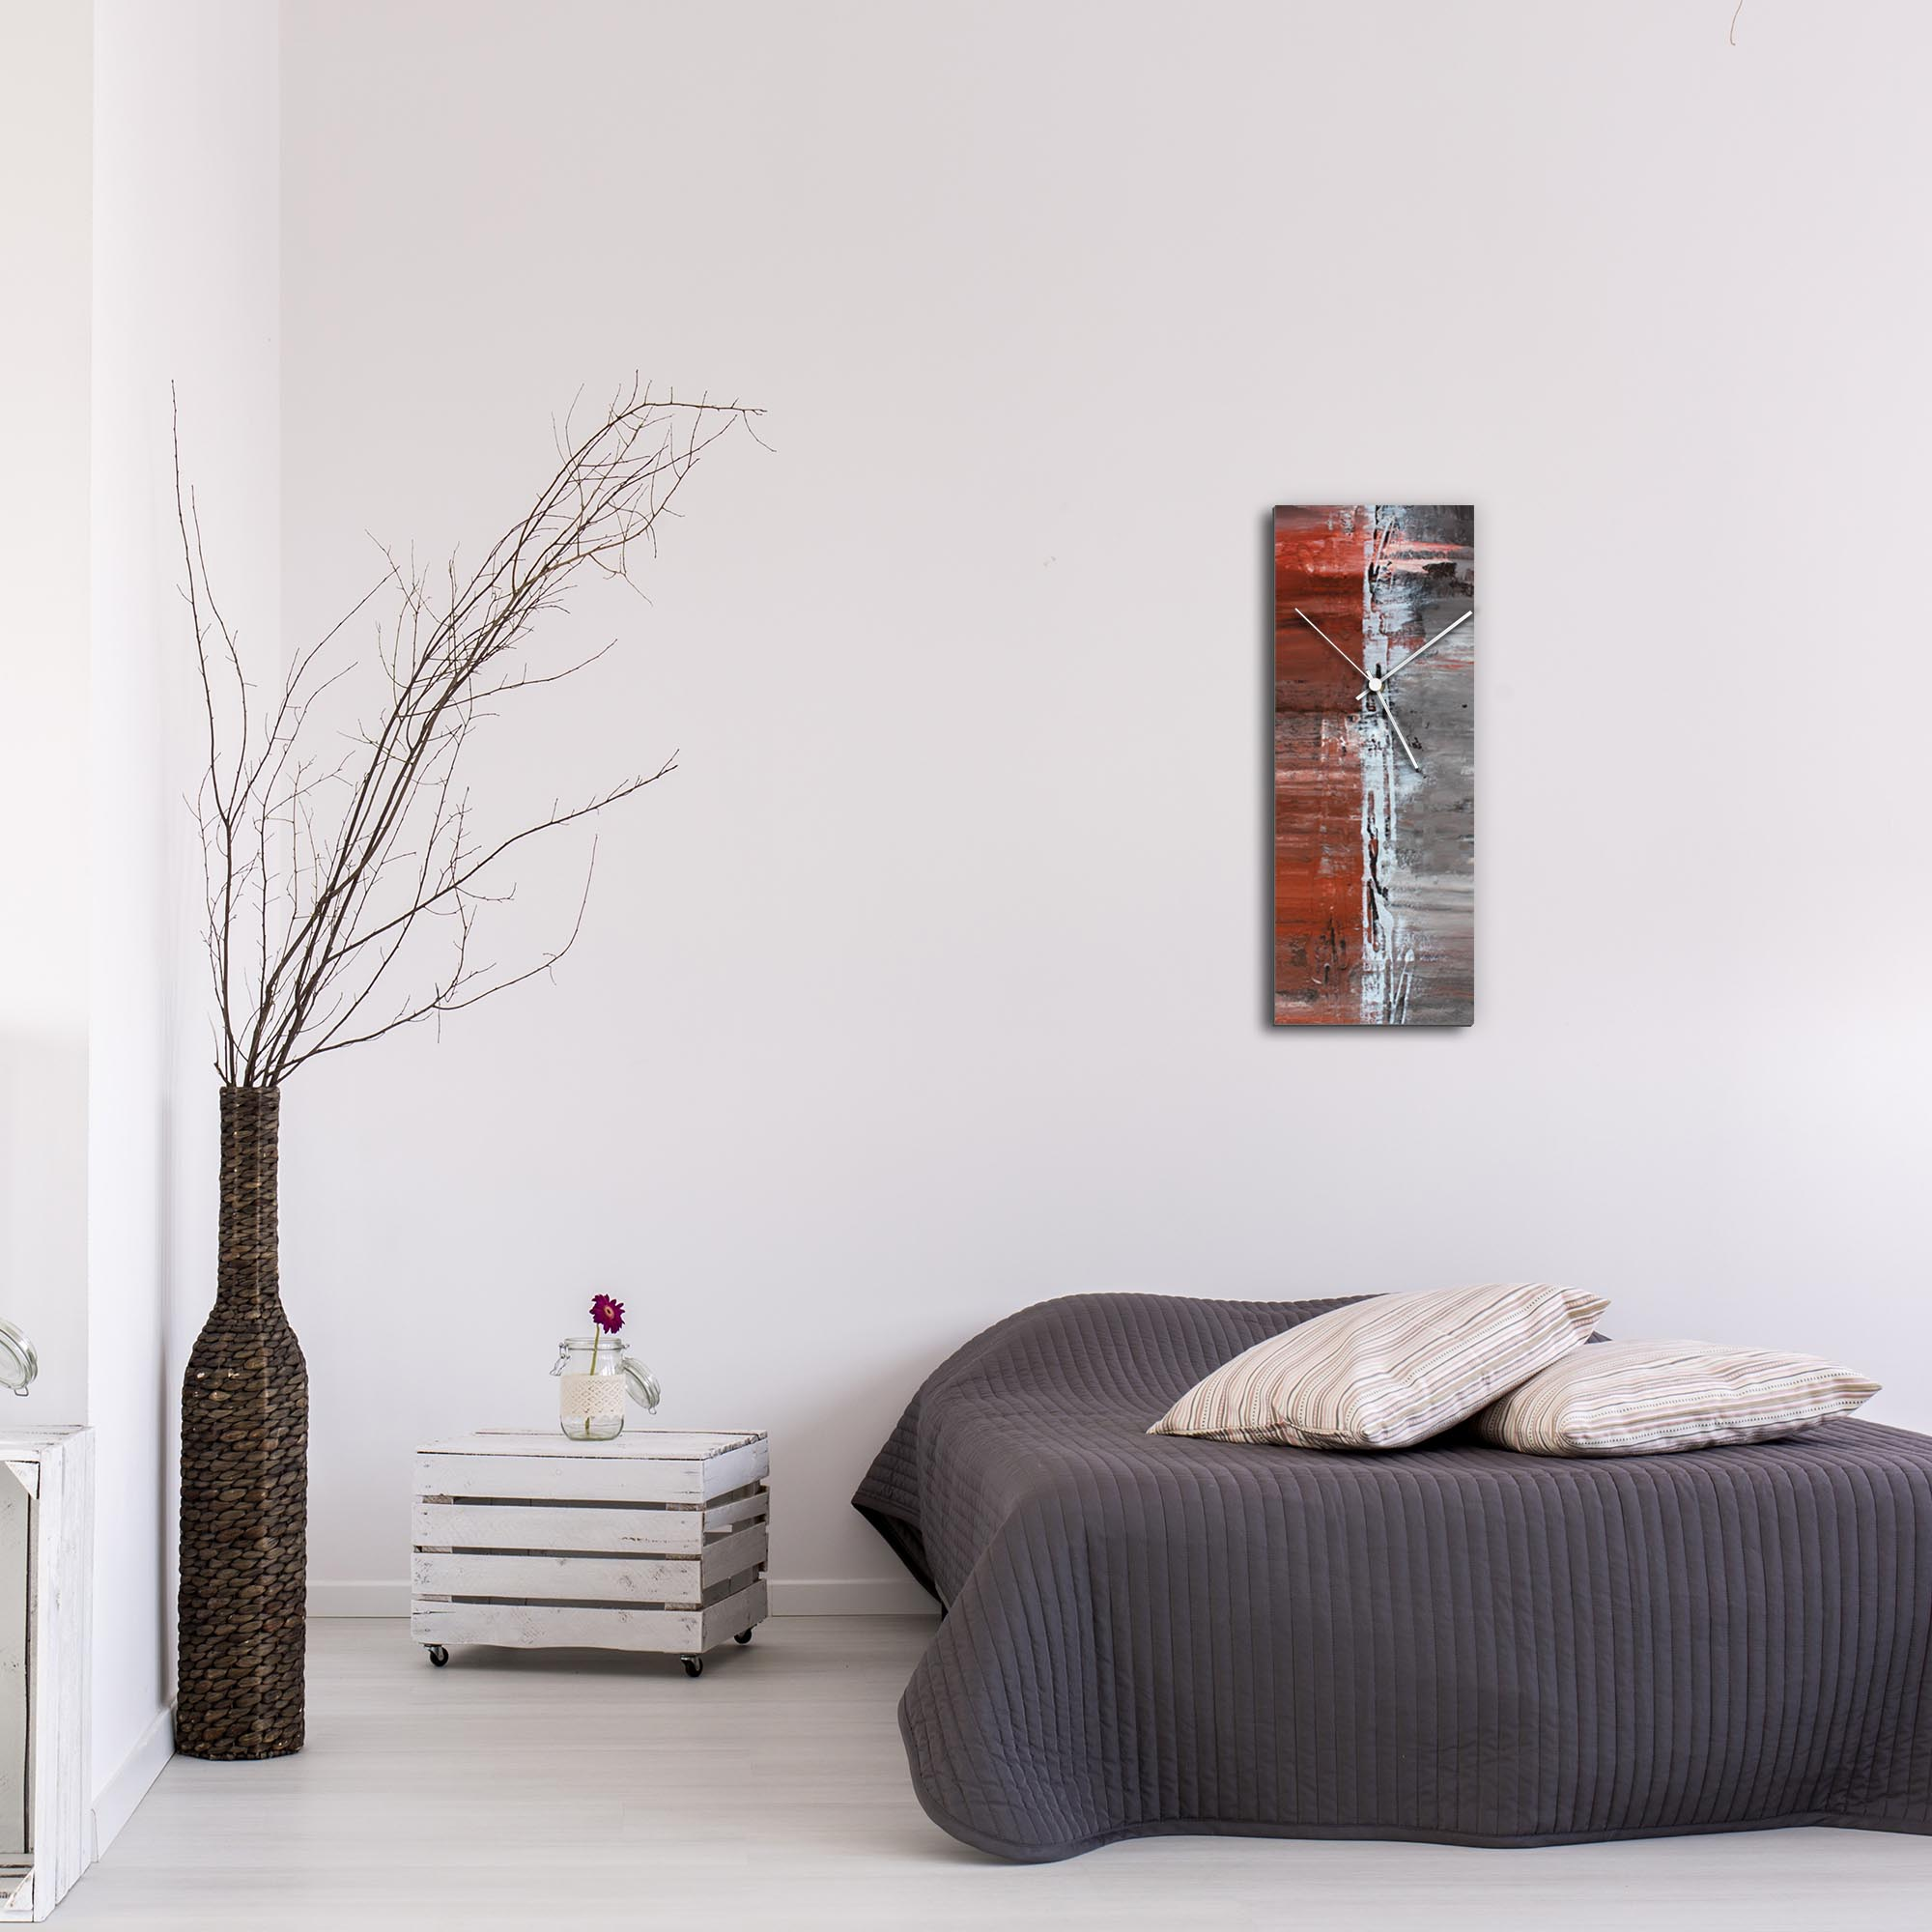 City Alley Clock Large by Mendo Vasilevski - Urban Abstract Home Decor - Lifestyle View